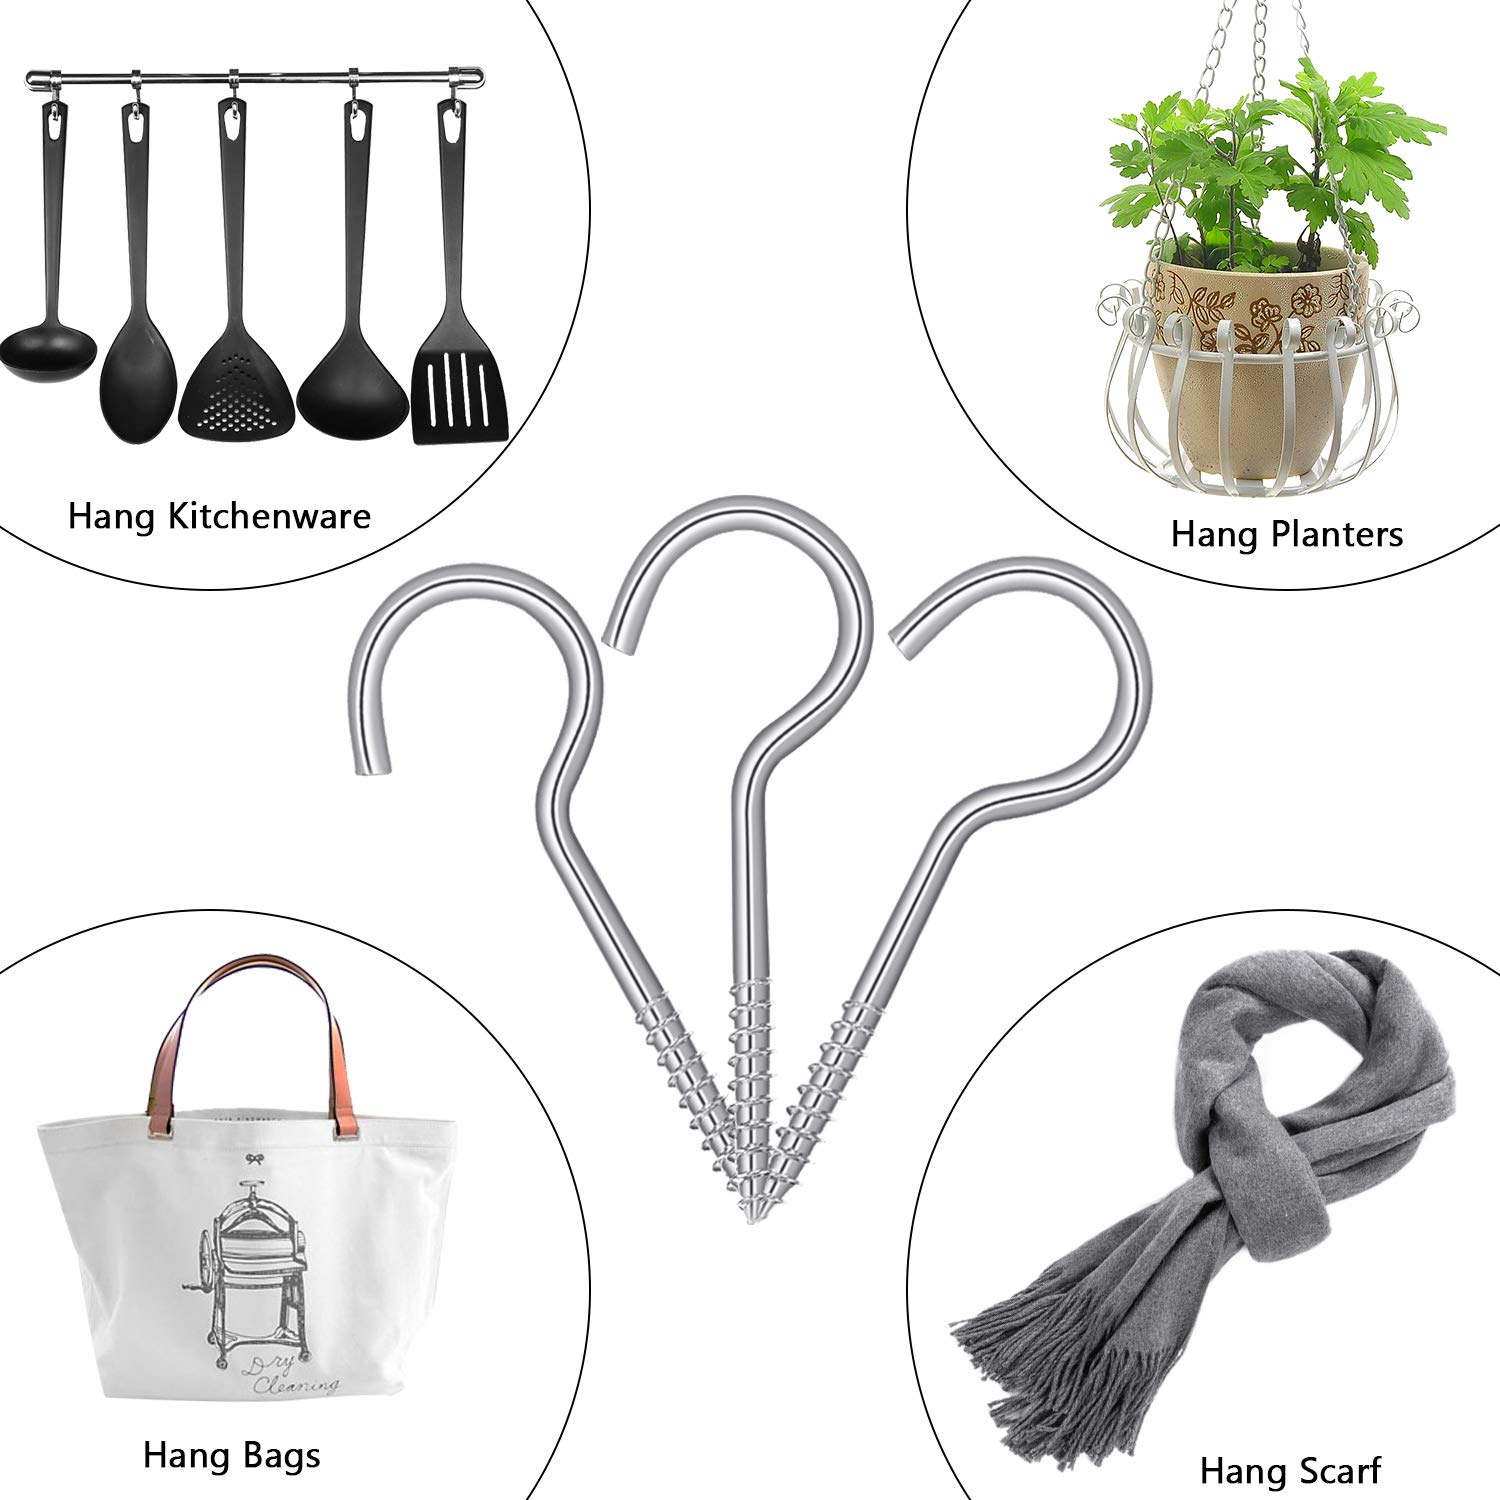 35 Pieces, 2.75 Inch Screw Hooks Self-Tapping Ceiling Hooks Carbon Steel Cup Hooks for Home Office Garden